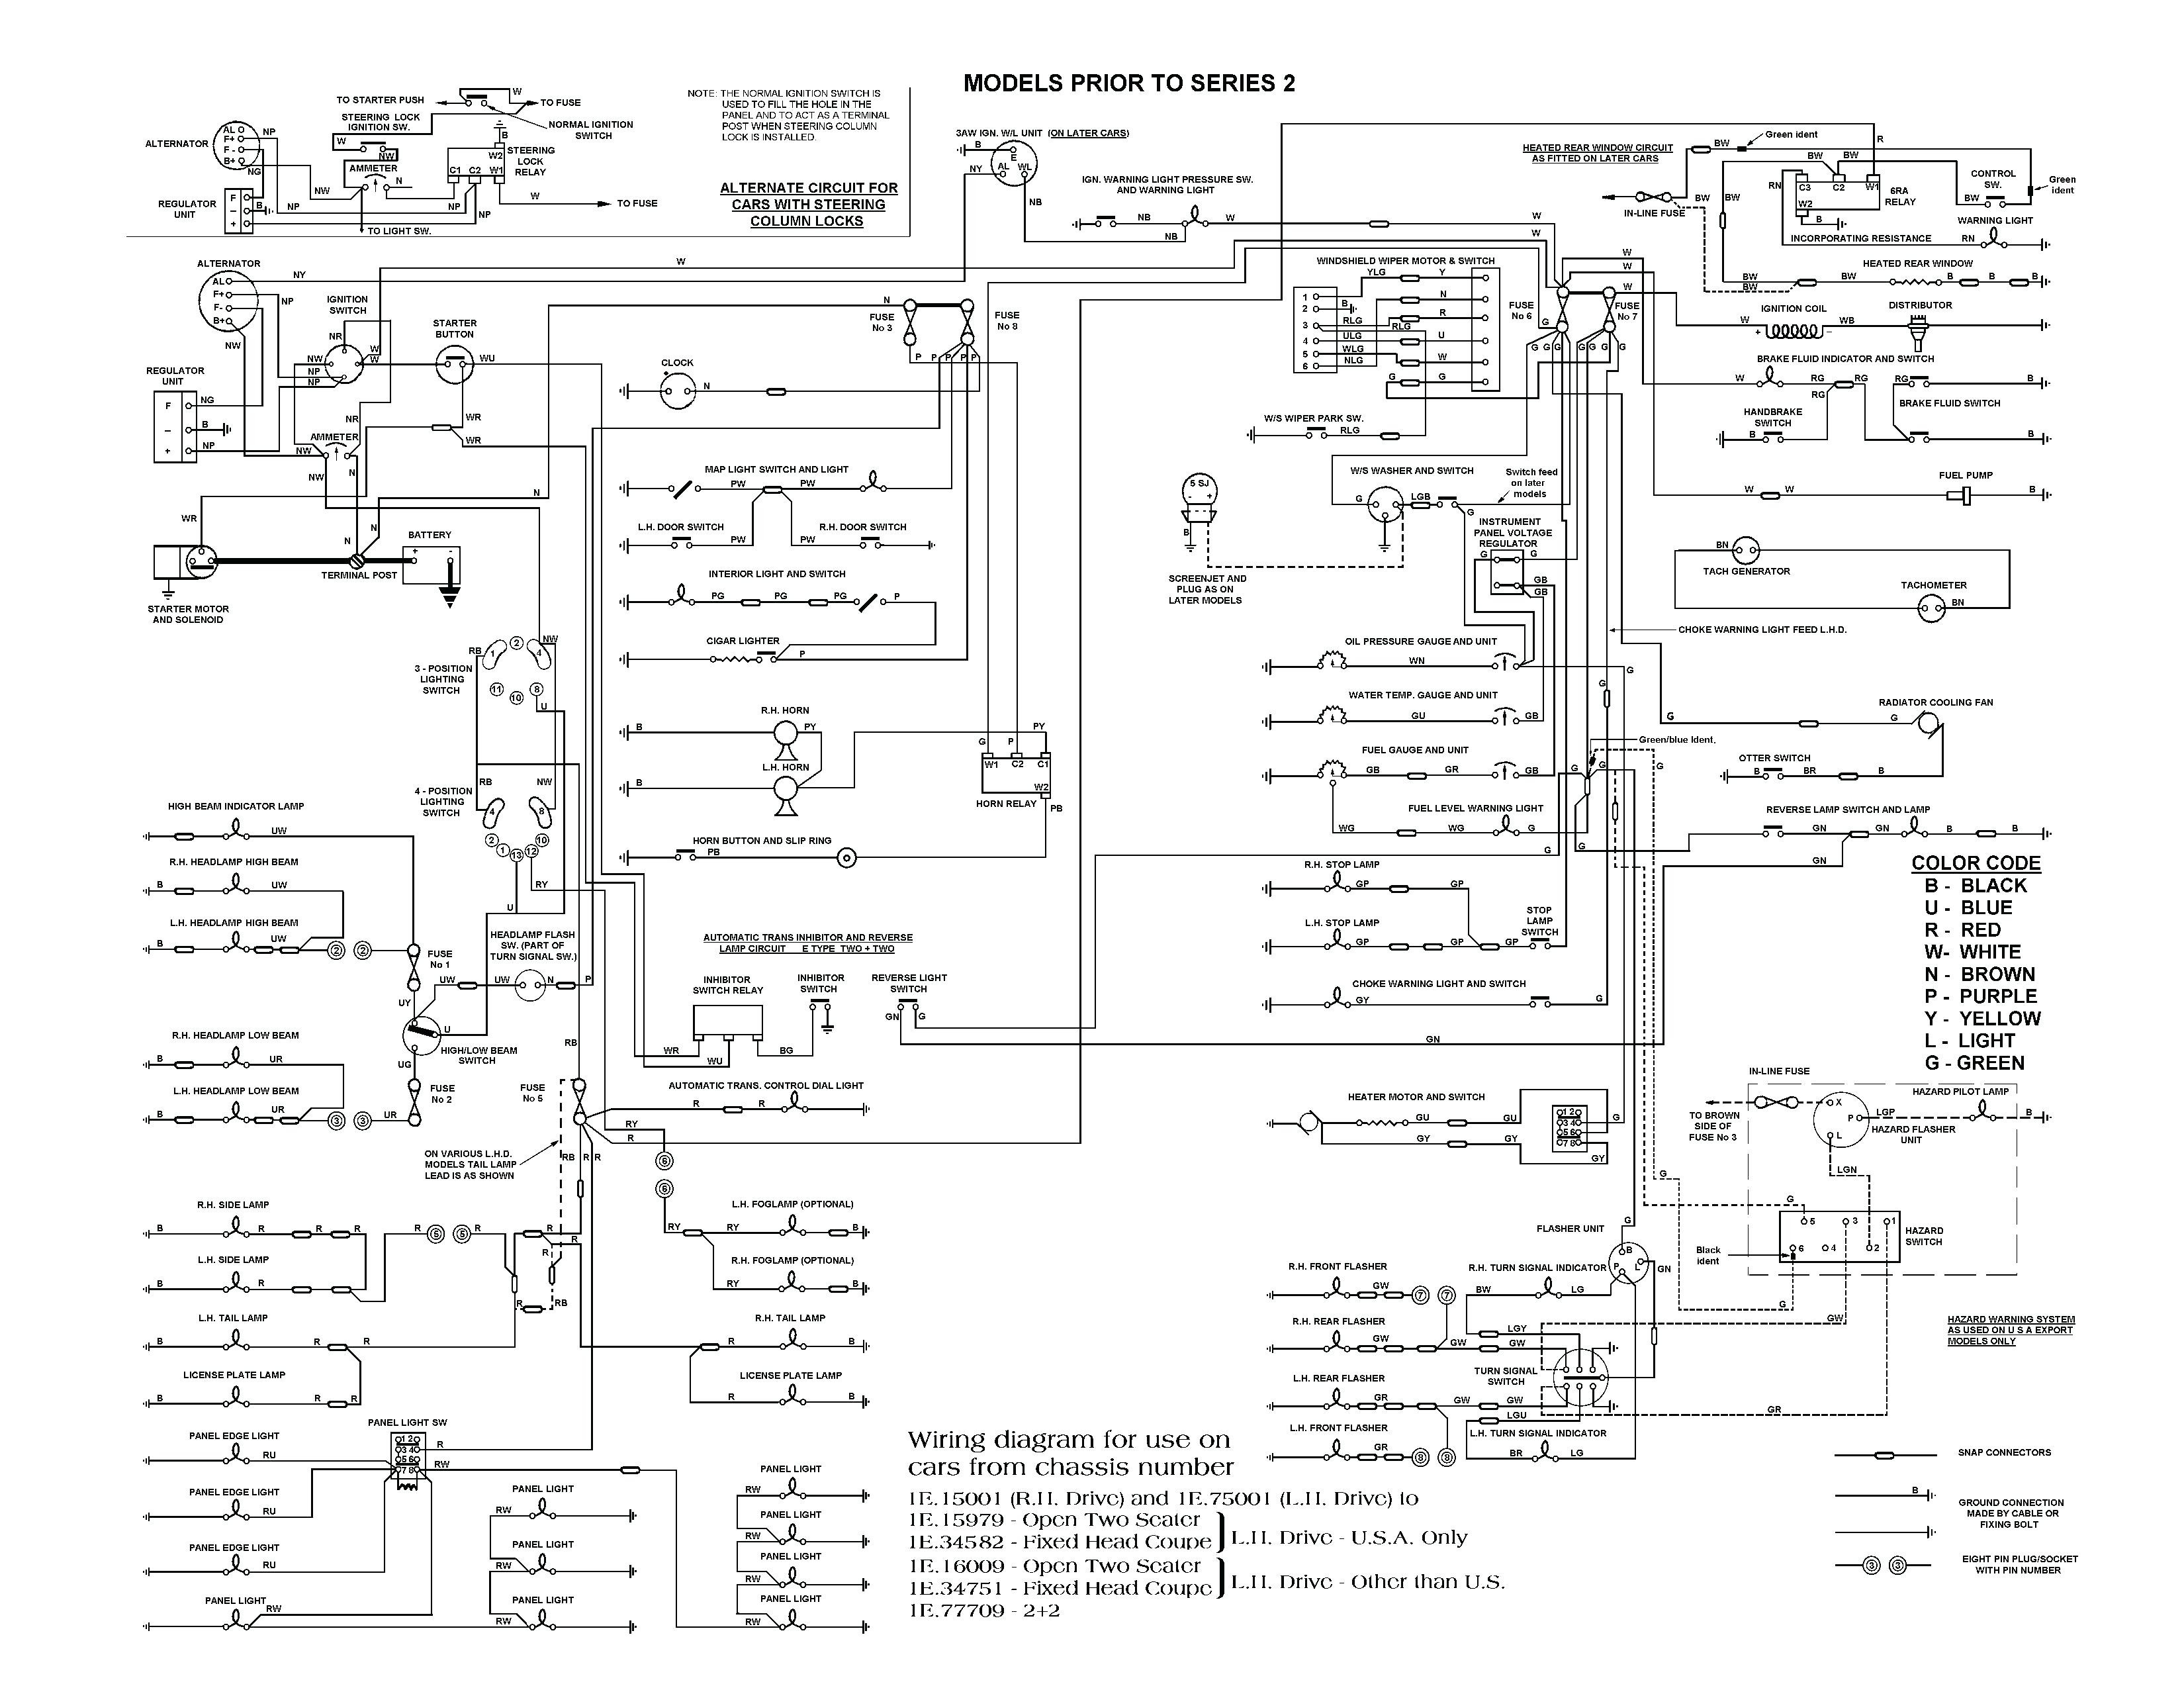 fuel gauge diagram land rover discovery wiring diagram my wiring marine tachometer wiring diagram fuel gauge diagram e type fuel temp oil ammeter gauge wiring diagram symbols jaguar xf of